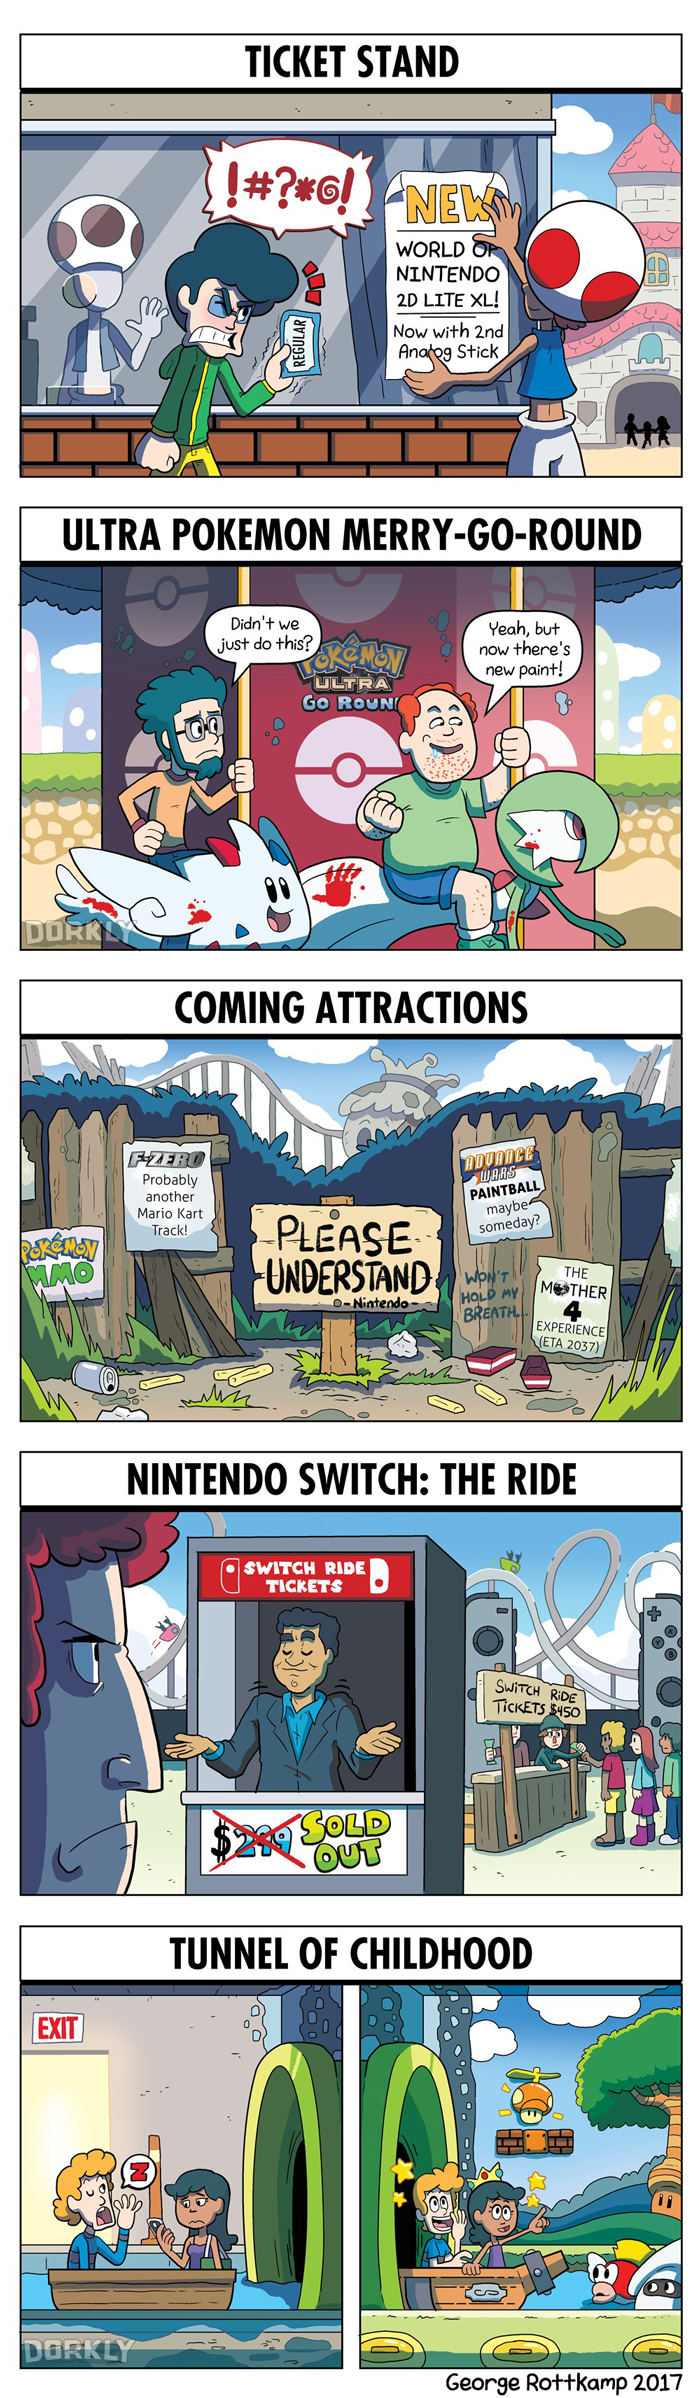 DORKLY: What a Nintendo Theme Park Would Look Like by GeorgeRottkamp